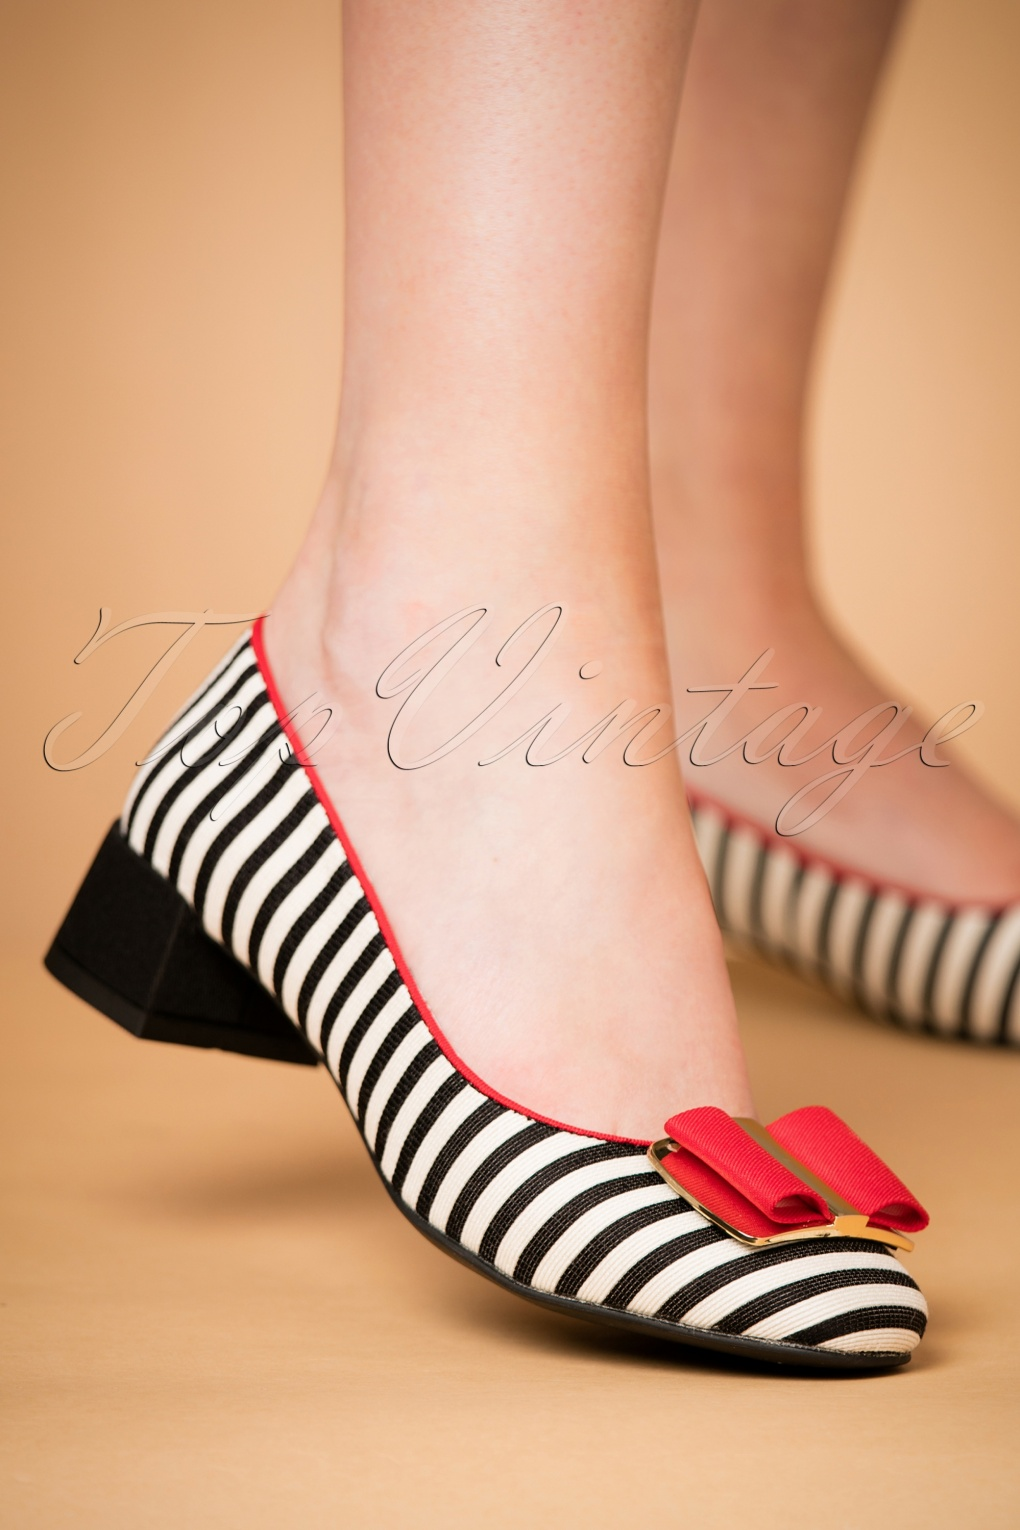 Retro Vintage Flats and Low Heel Shoes 60s June Striped Pumps in Black and Red £60.85 AT vintagedancer.com